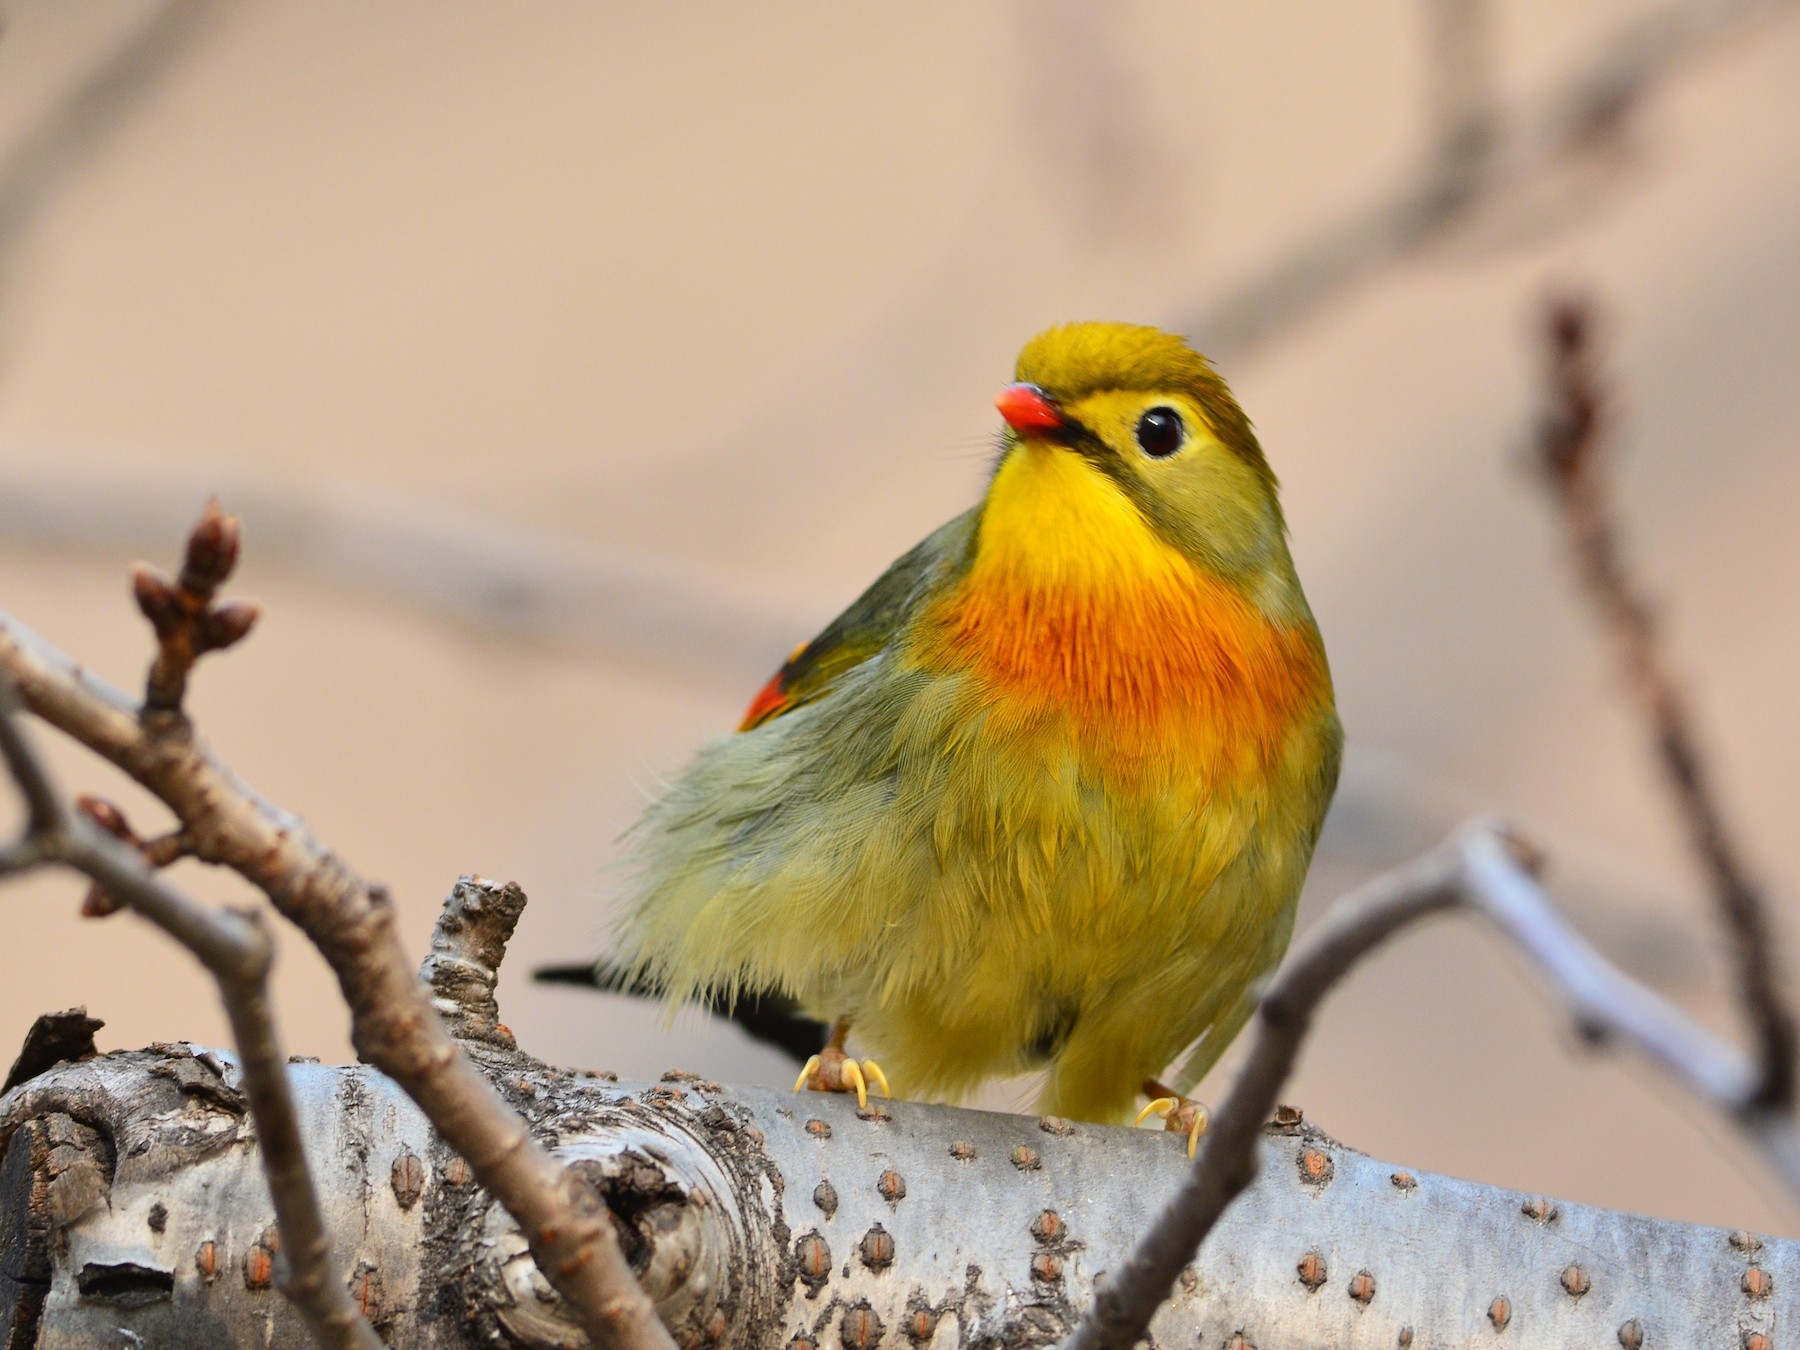 Red-billed Leiothrix - Da Chih Chen